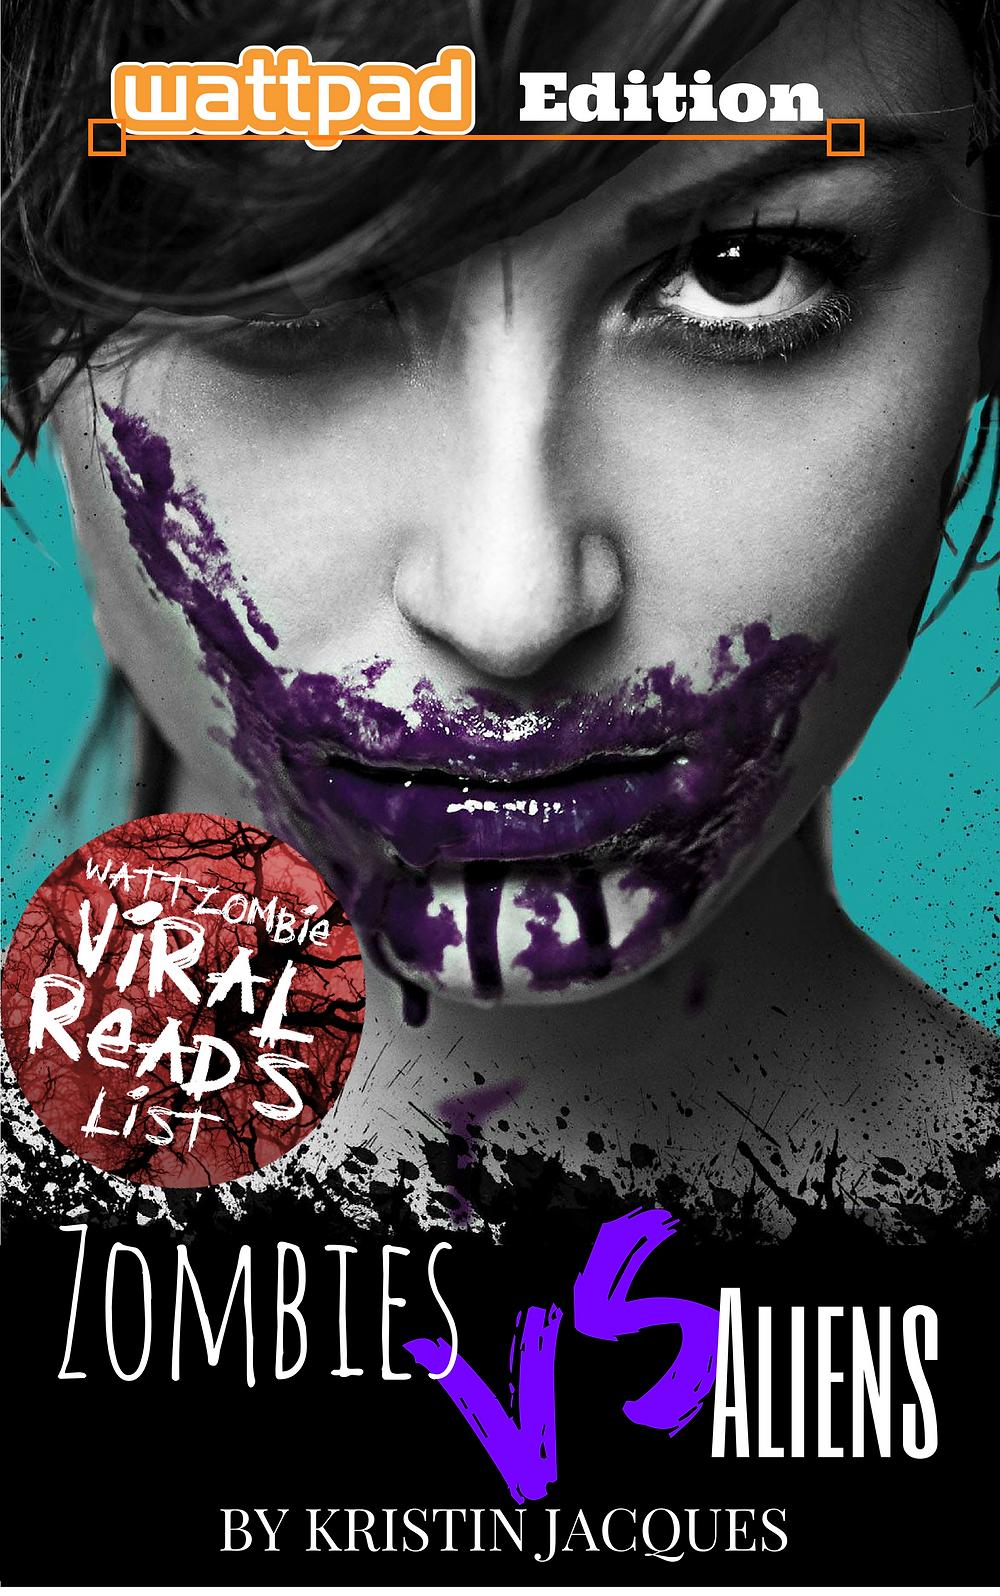 Zombies vs Aliens, Kristin Jacques, author interview, freelance book editor, affordable book editor, affordable book editing services, wattpad editor, freelance editor, book editor